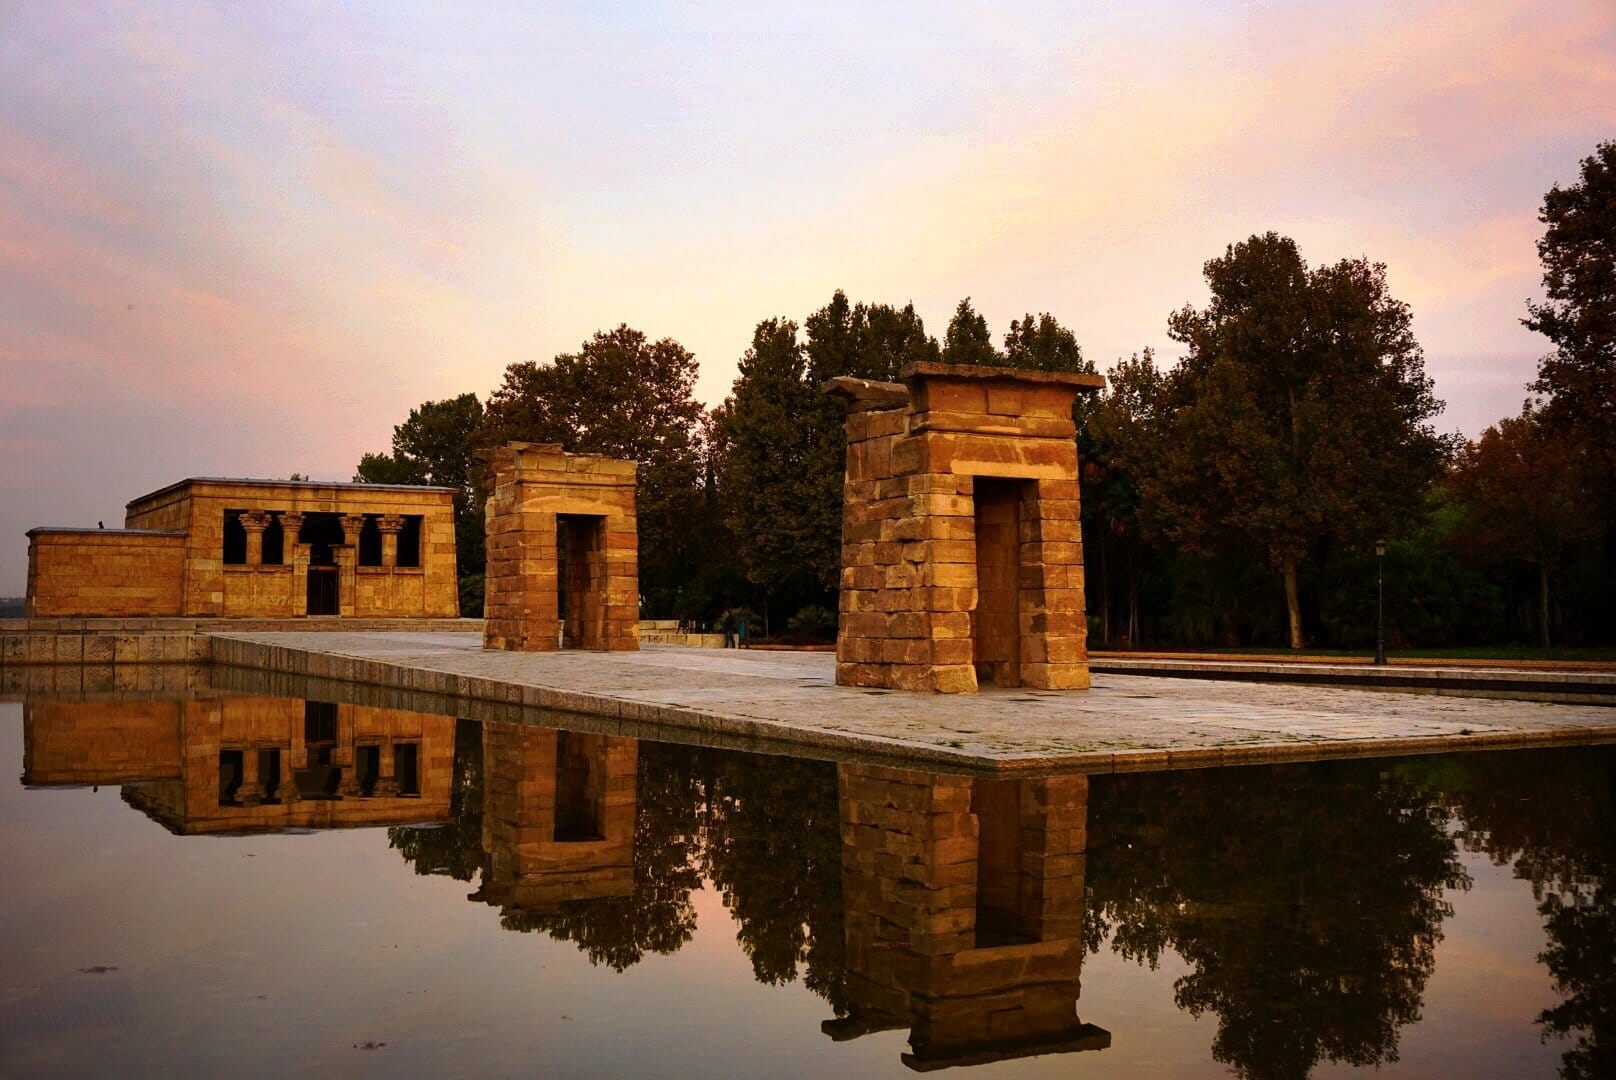 Madrid Photography: The Temple of Debod at Sunrise